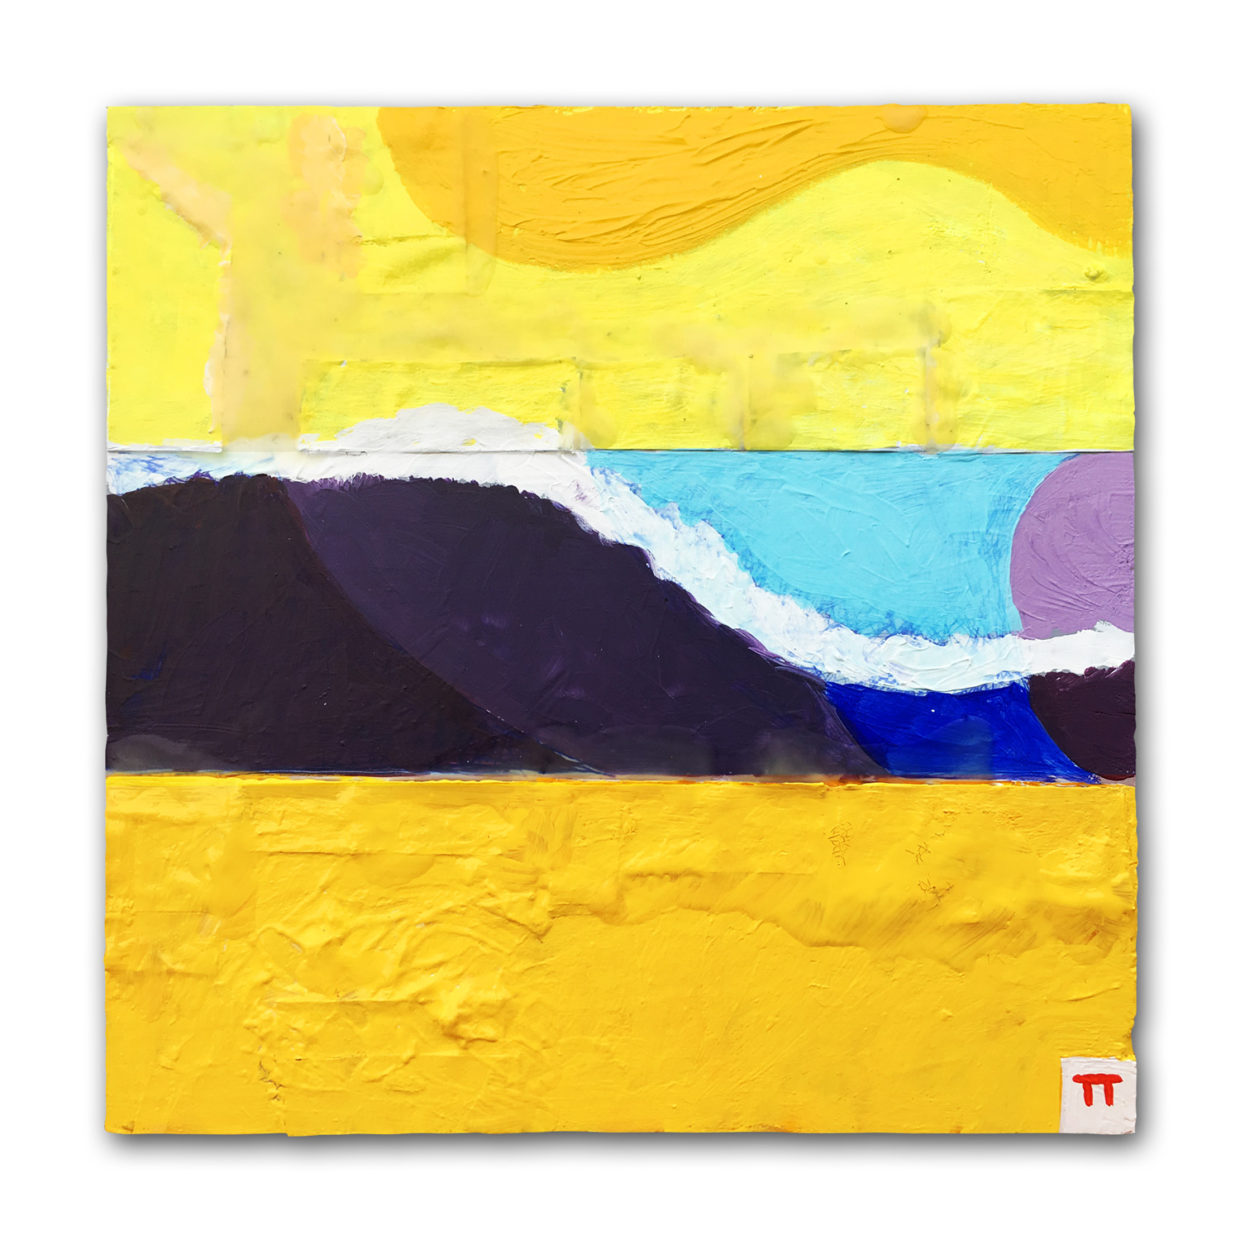 Outside - Wave Series No. 12 - Tim Thayer artwork - painting